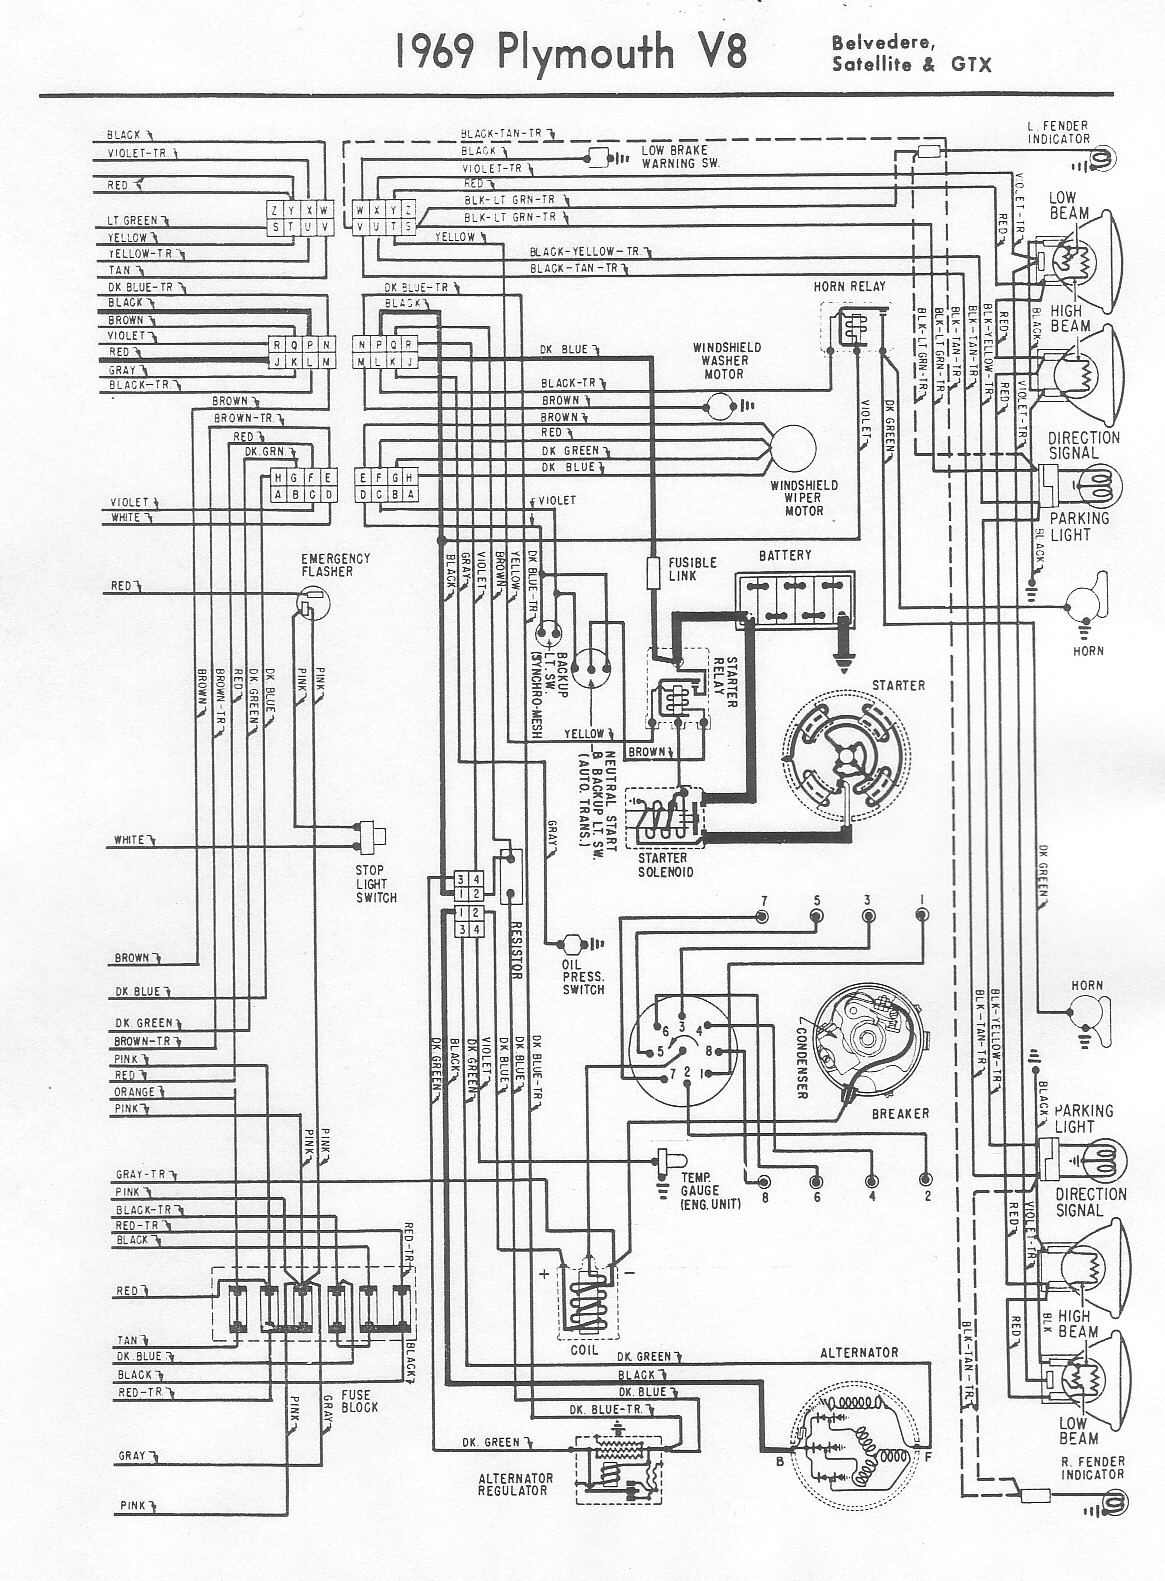 Plymouth Roadrunner Wiring Diagram Archive Of Automotive 69 Chevy Truck Harness Blog About Diagrams Rh Clares Driving Co Uk 1968 1970